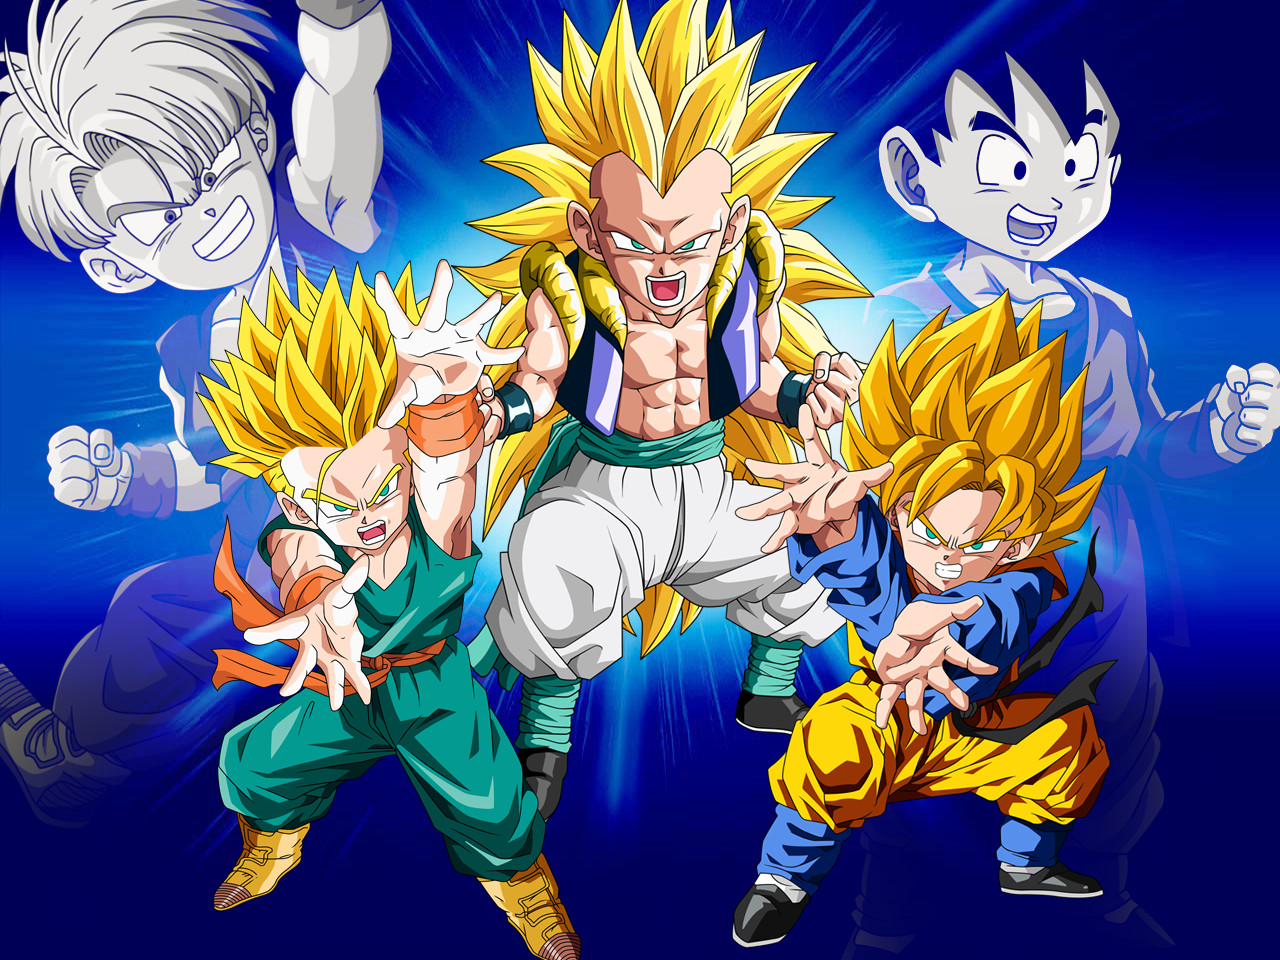 dragon ball z is super saiyan 3 goku more powerful than